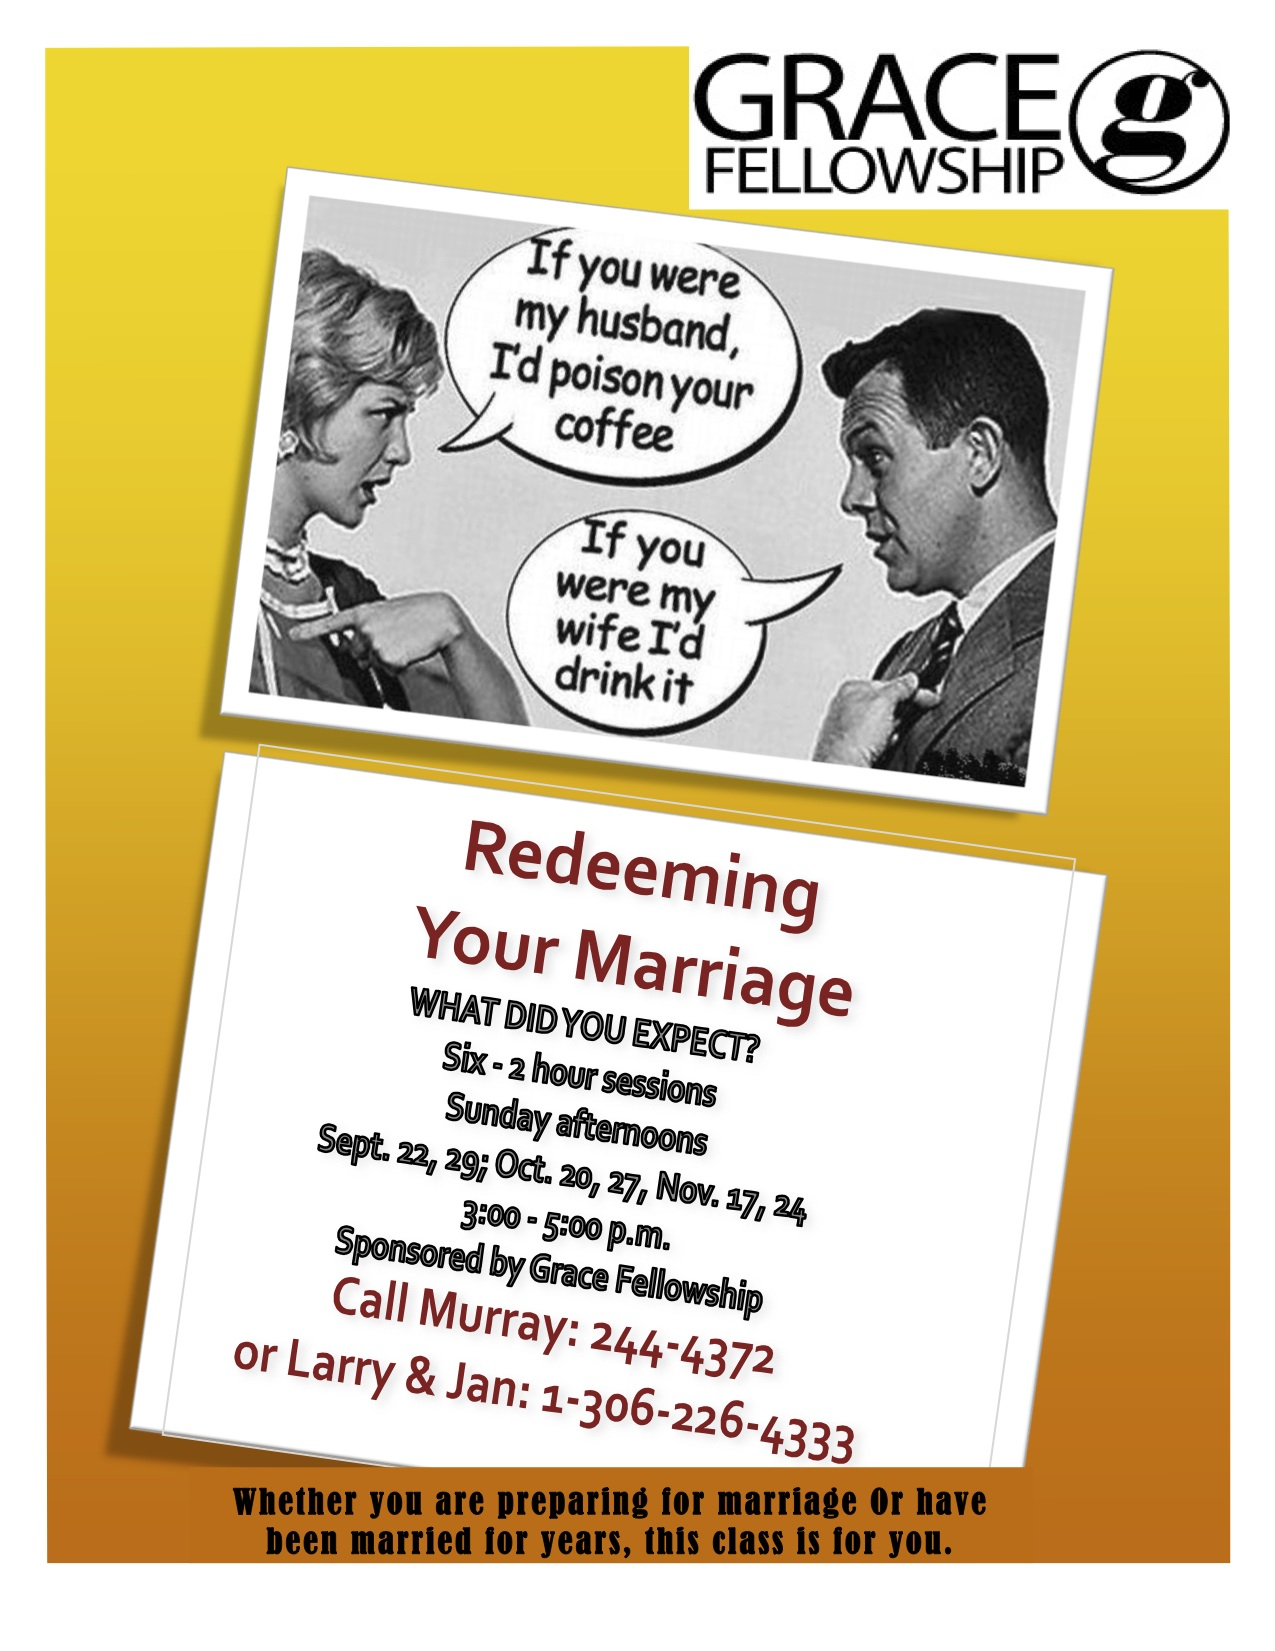 Redeeming Your Marriage poster 2013